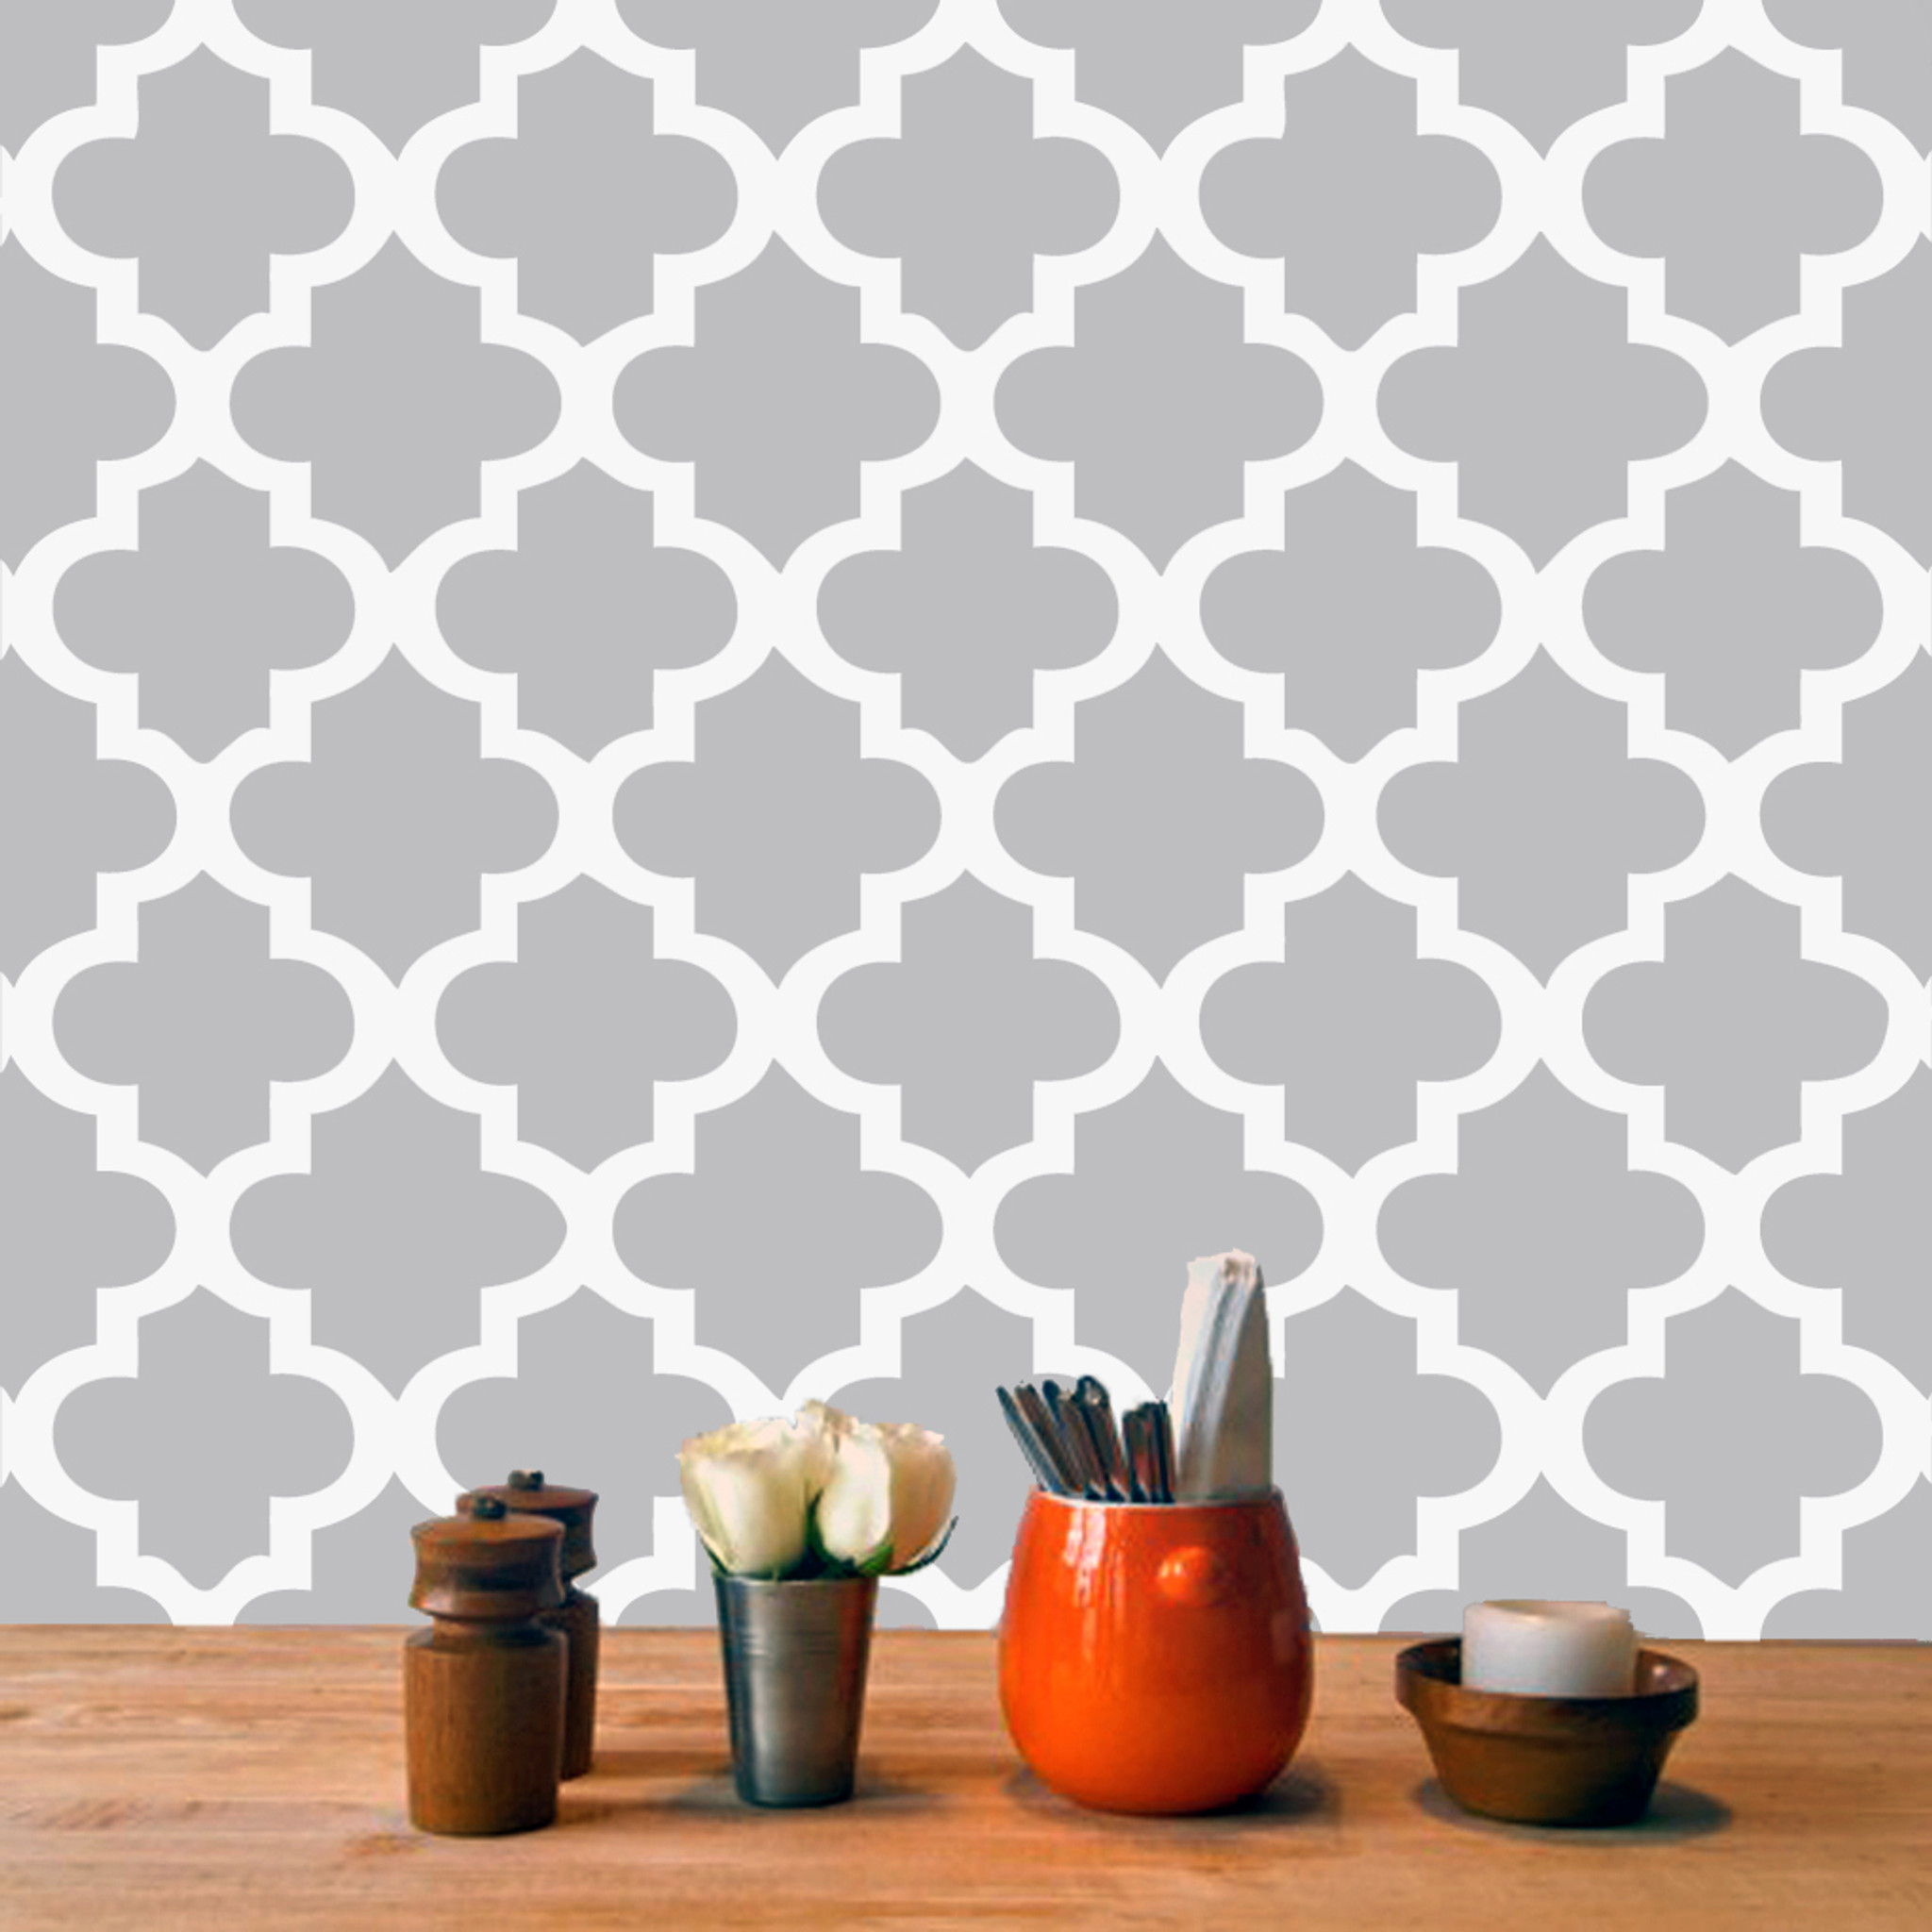 Moroccan Tile Backsplash Wall Decals Home Décor Wall Decals